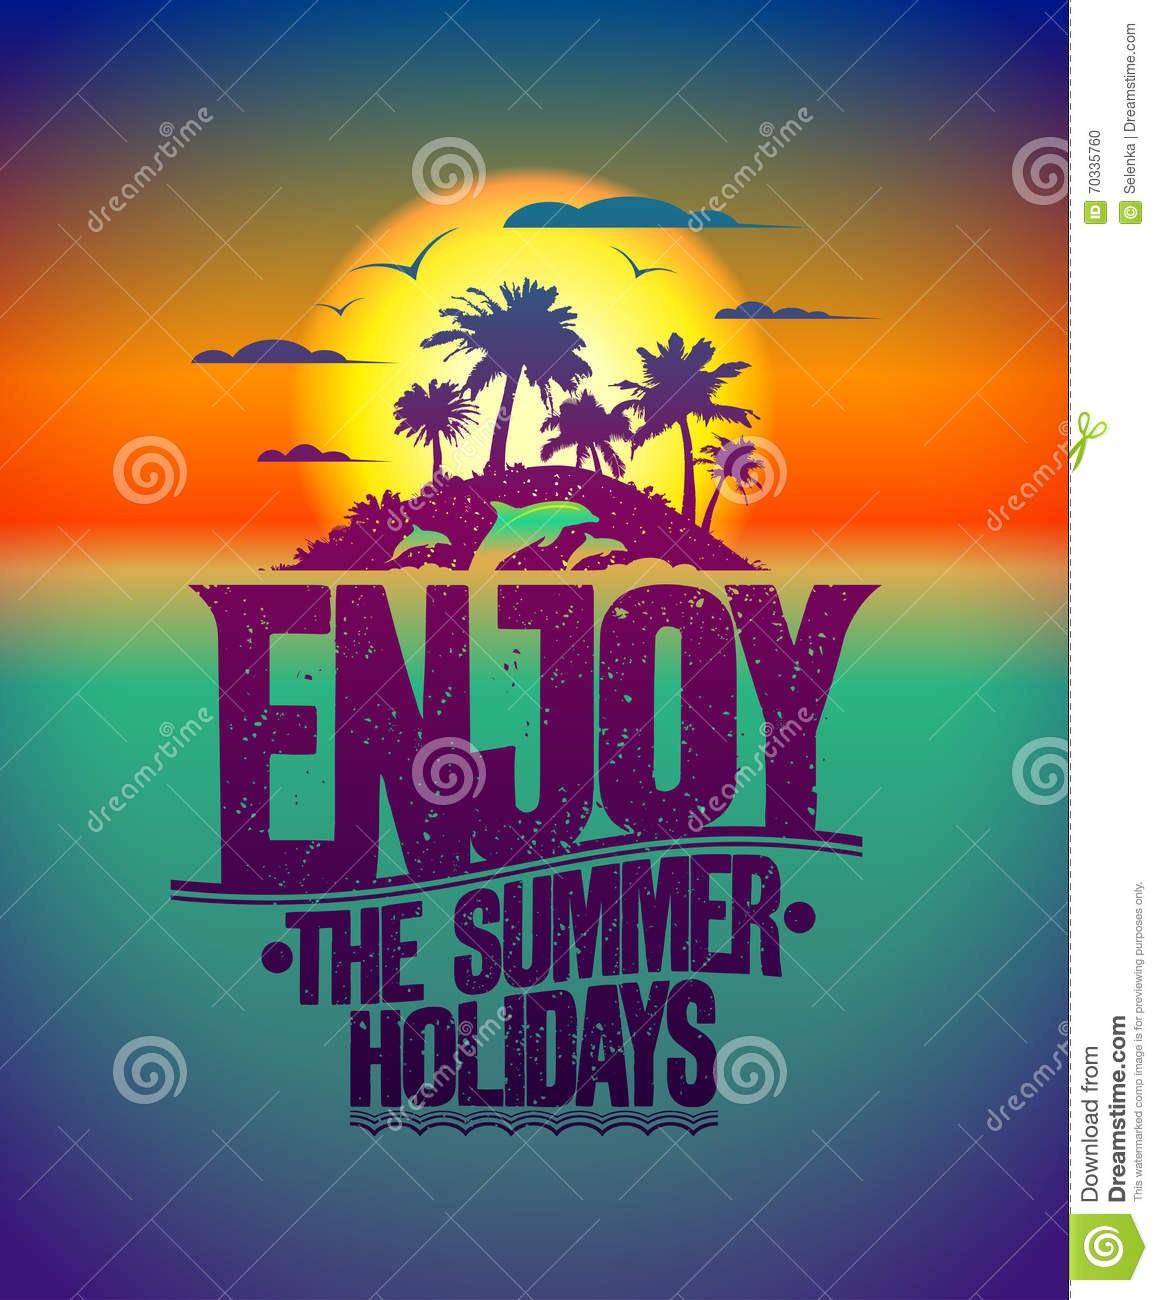 Enjoy The Summer Holidays Quote Design Stock Vector - Image: 70335760